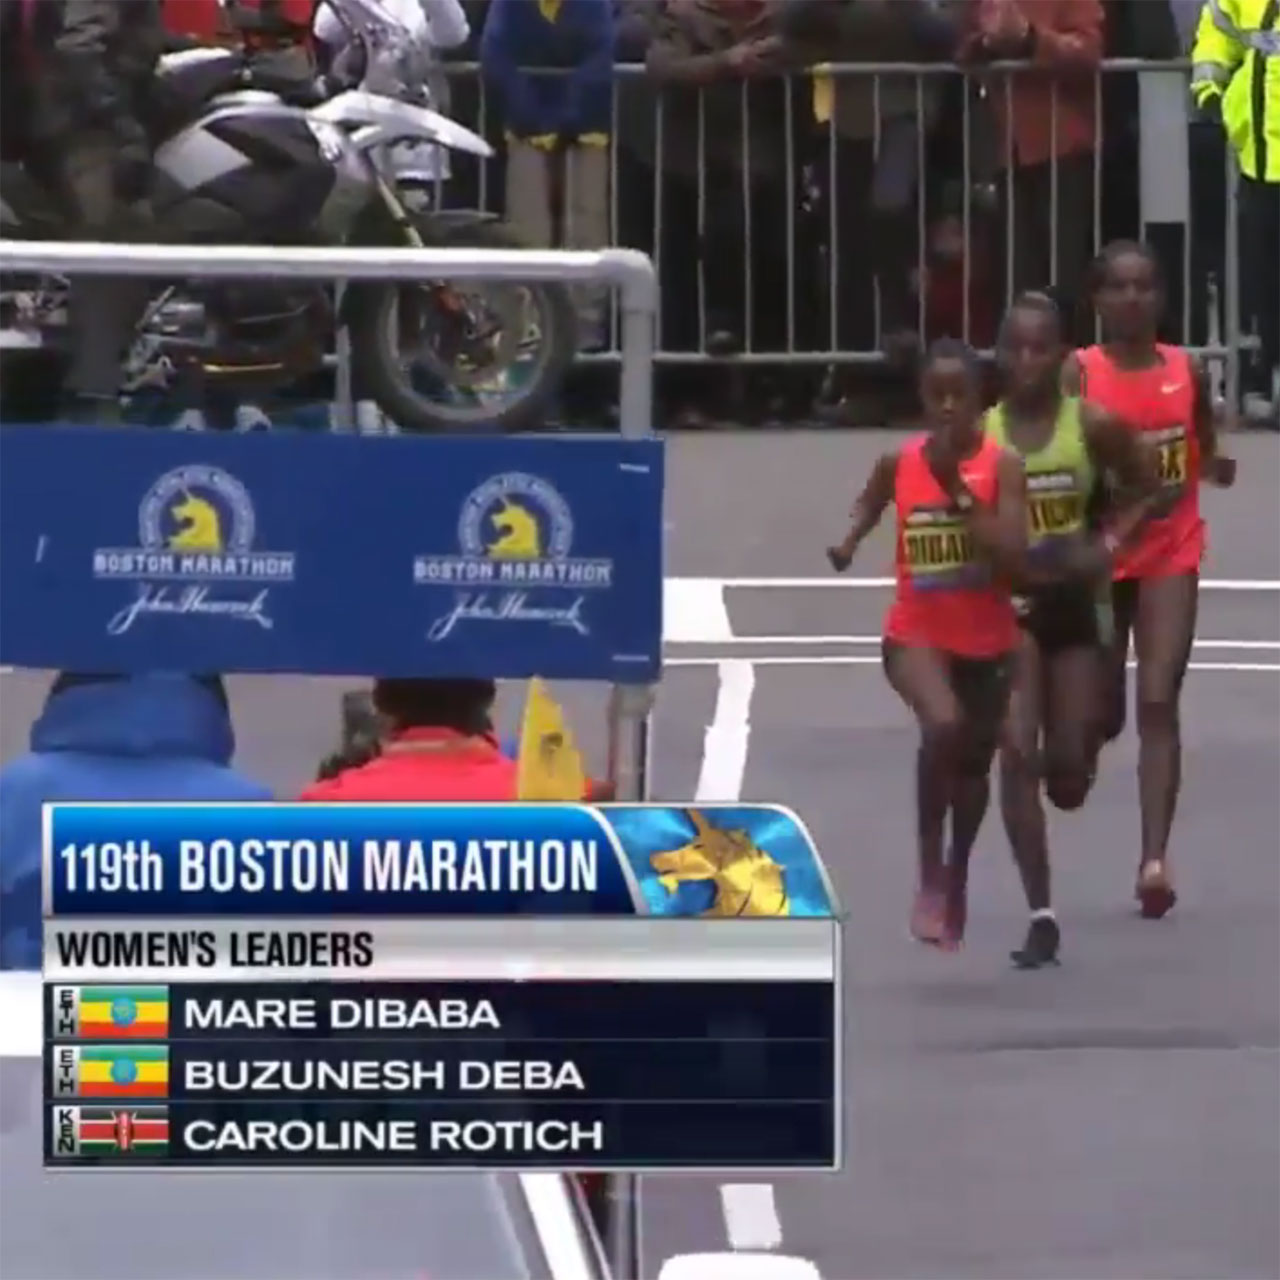 2015 Boston Marathon top three women: Caroline Rotich, Mare Dibaba and Buzunesh Deba